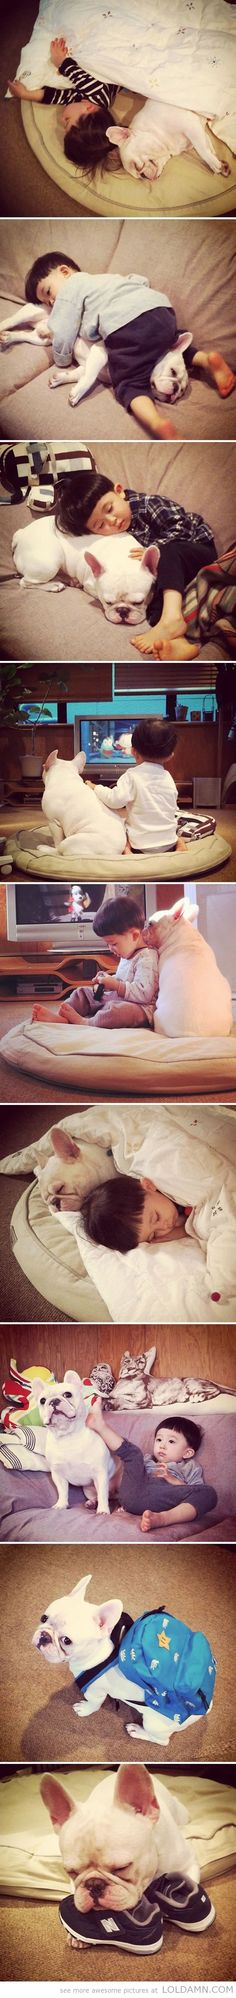 The sweetest friendship…cute boy with his best dog friend.